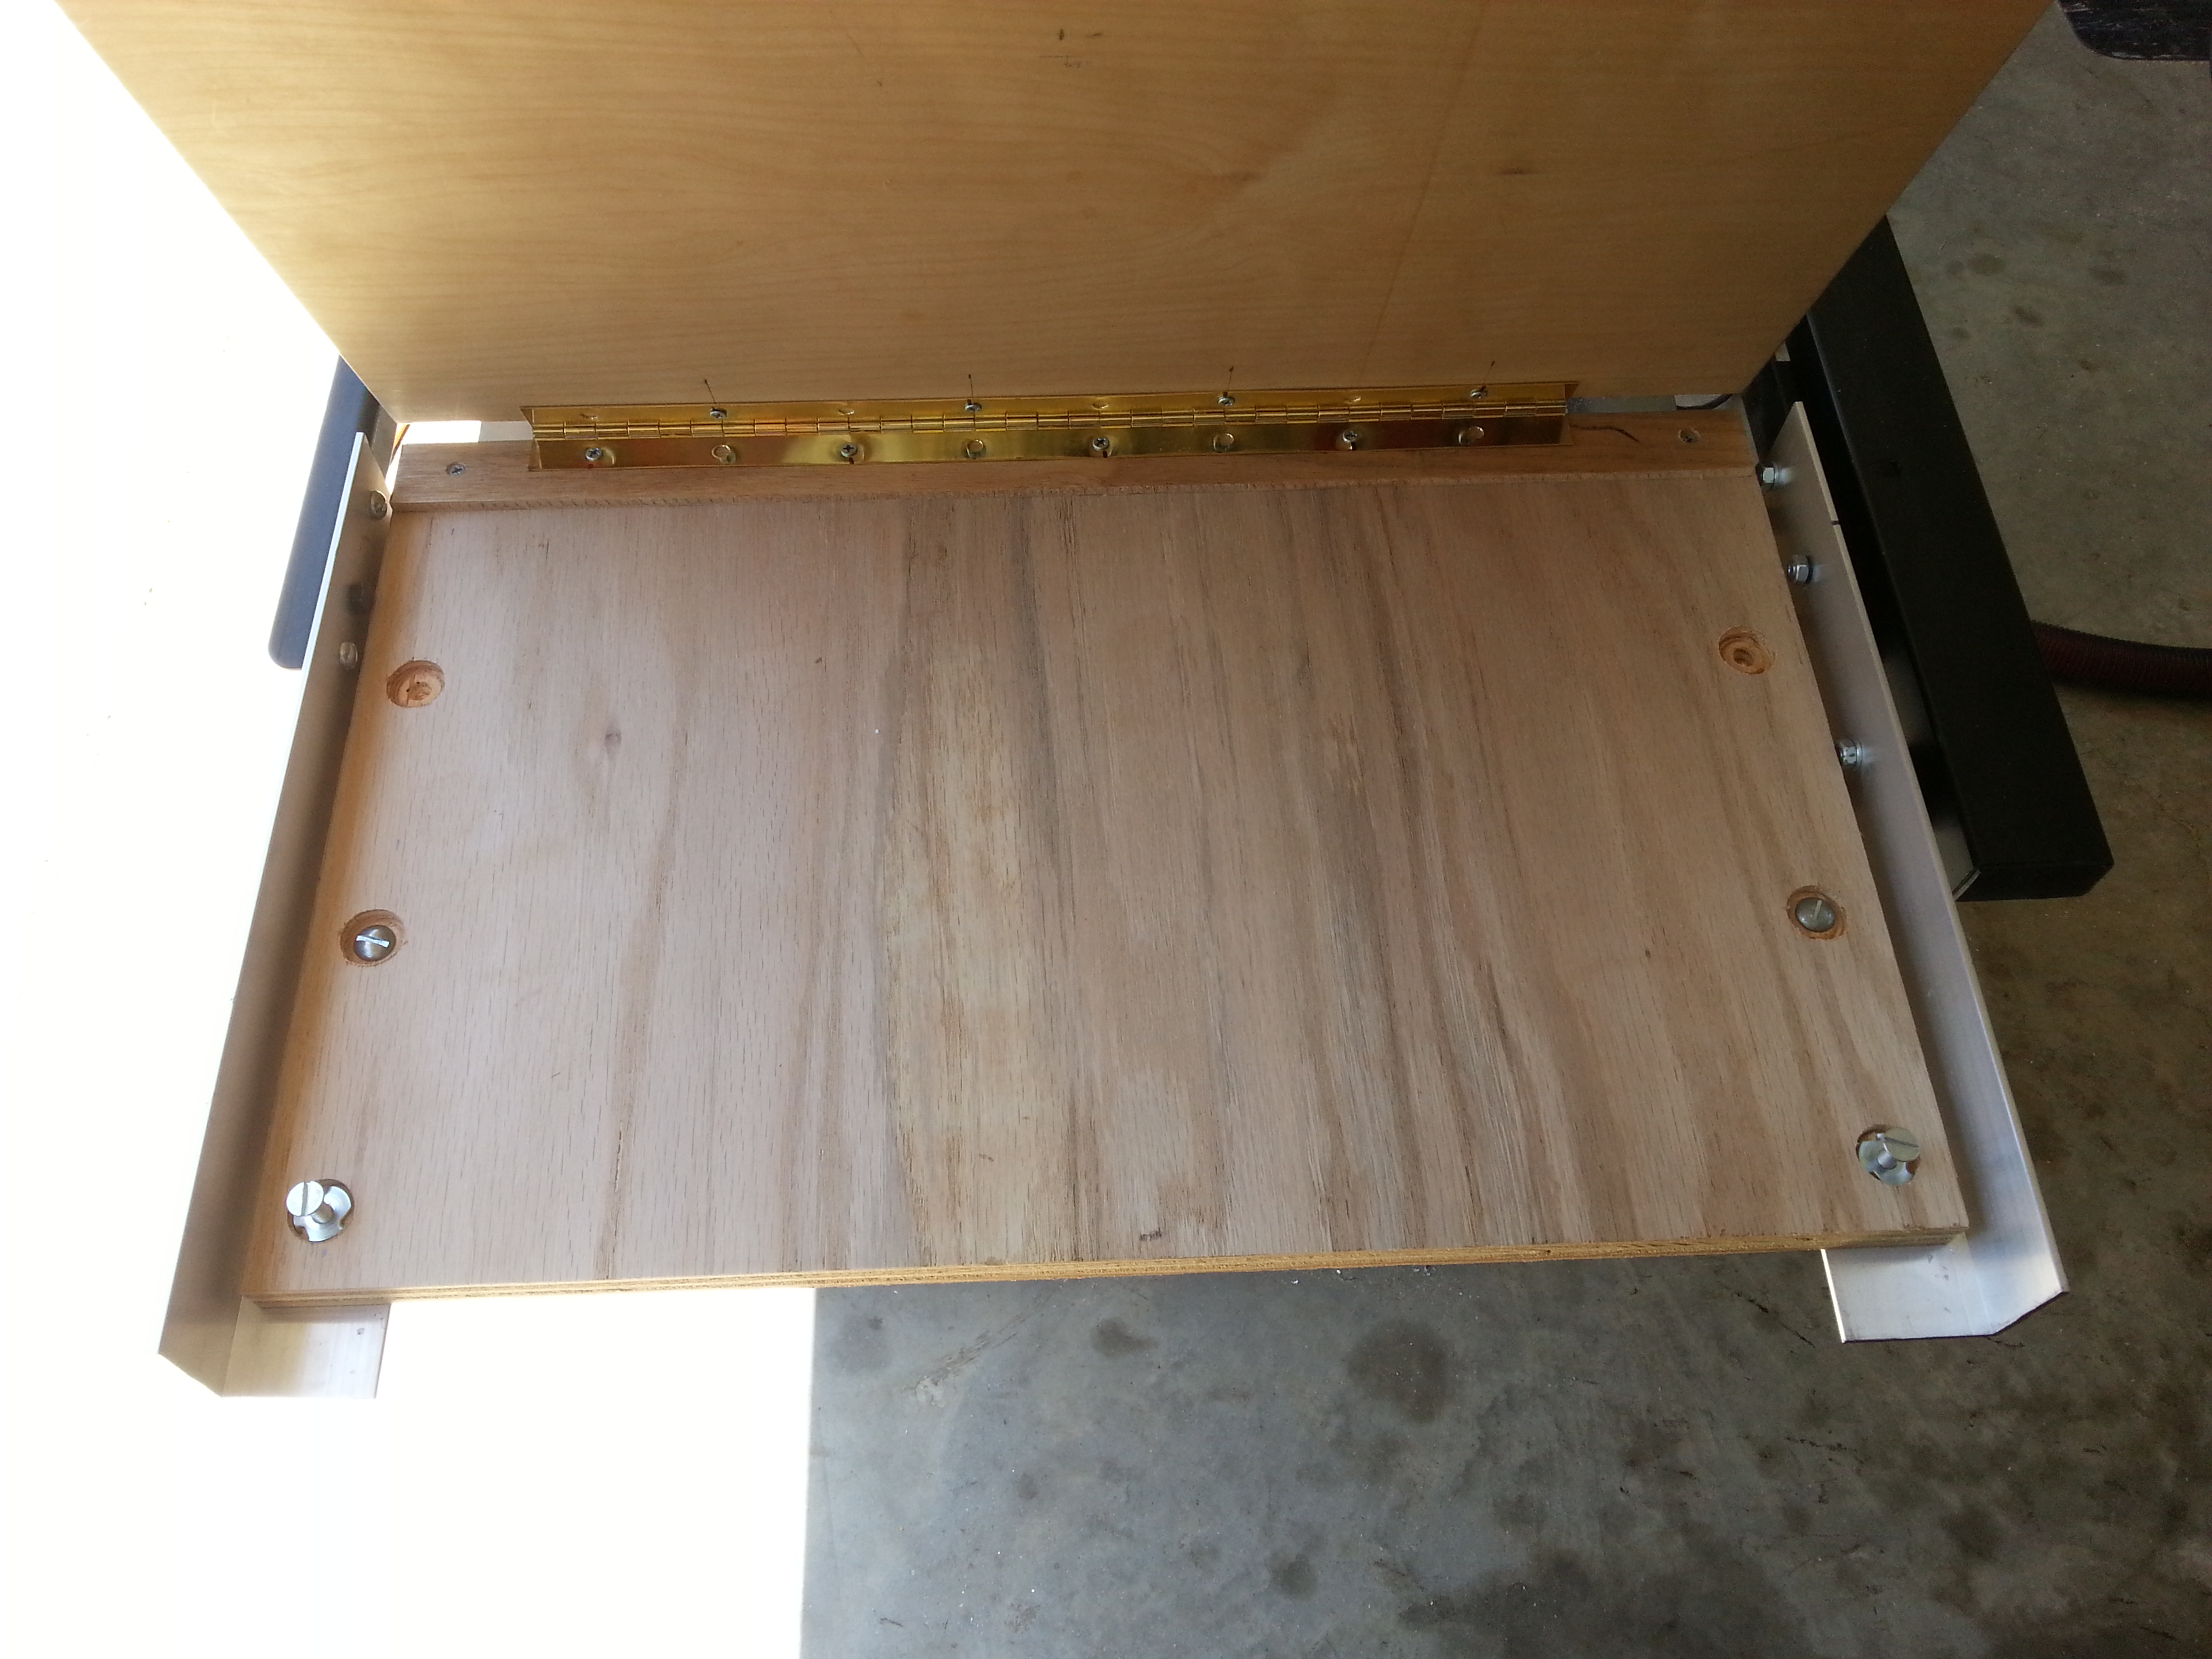 Picture of Cut Base, Top, Attach With Hinge, and Align